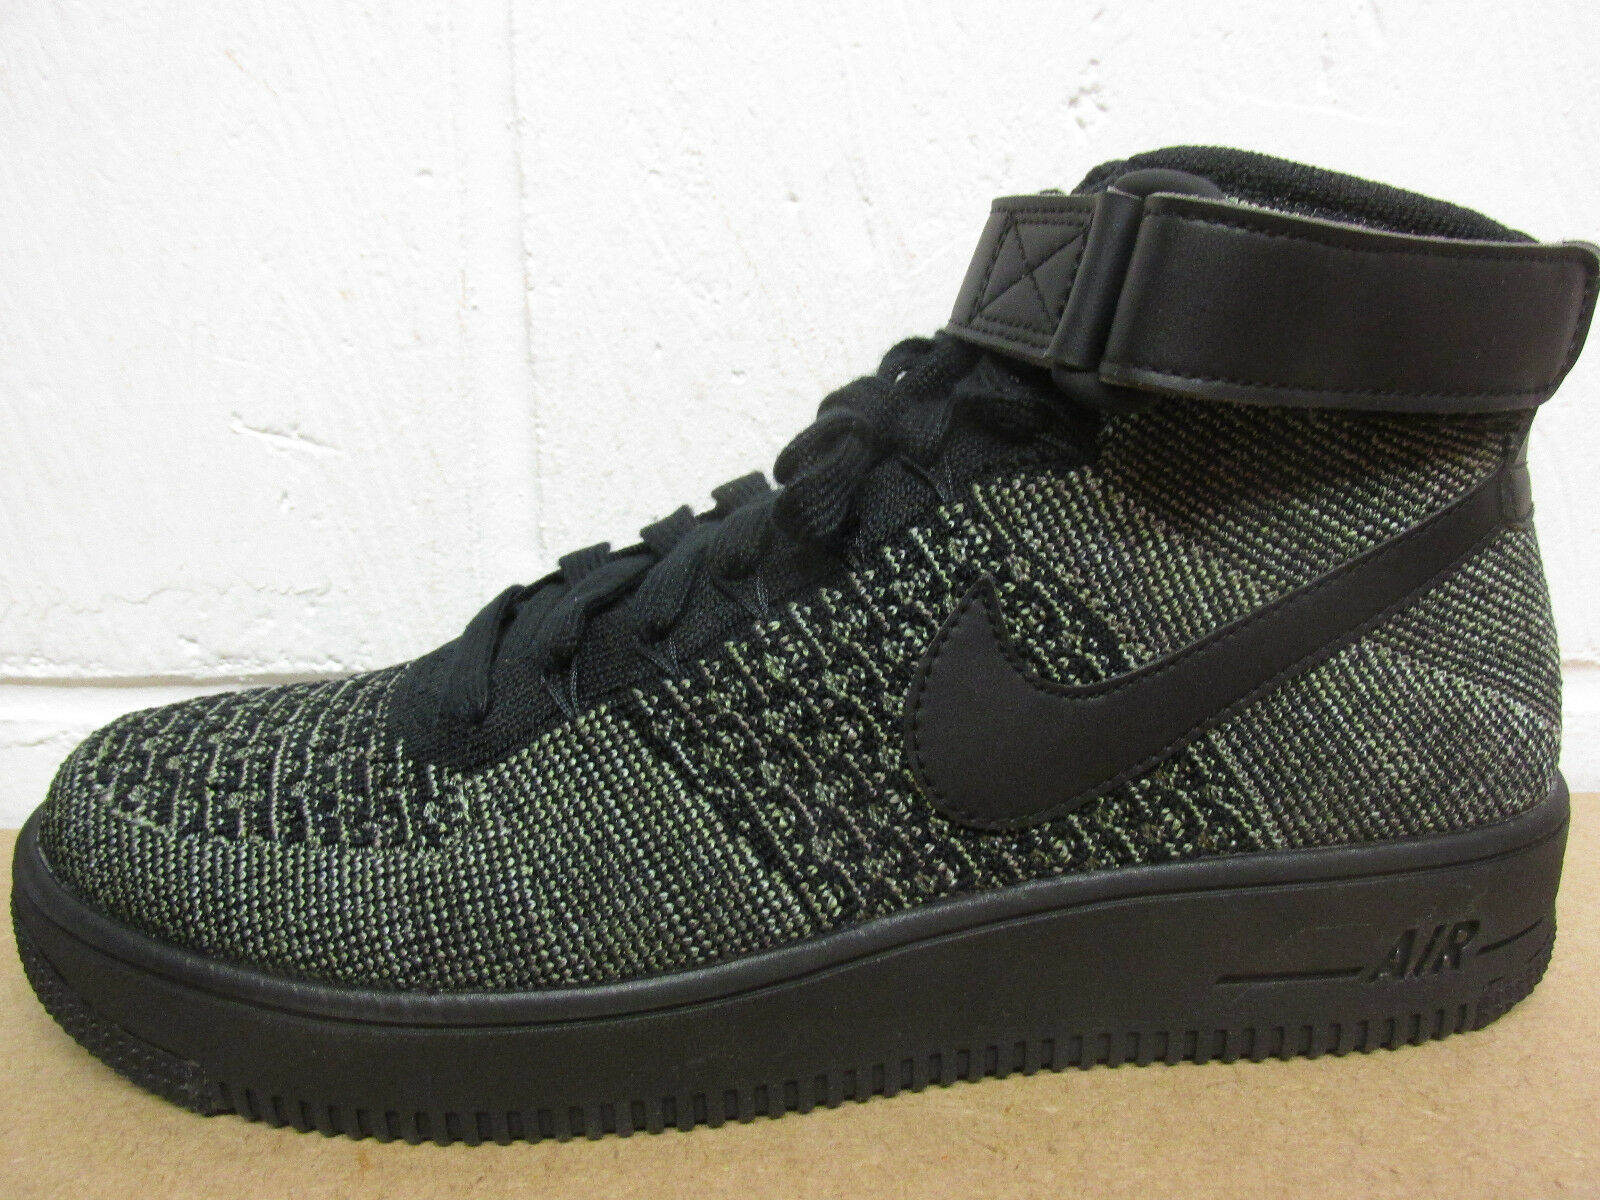 Nike AF1 Ultra Flyknit Mid homme Trainers 817420 301 Sneakers chaussures